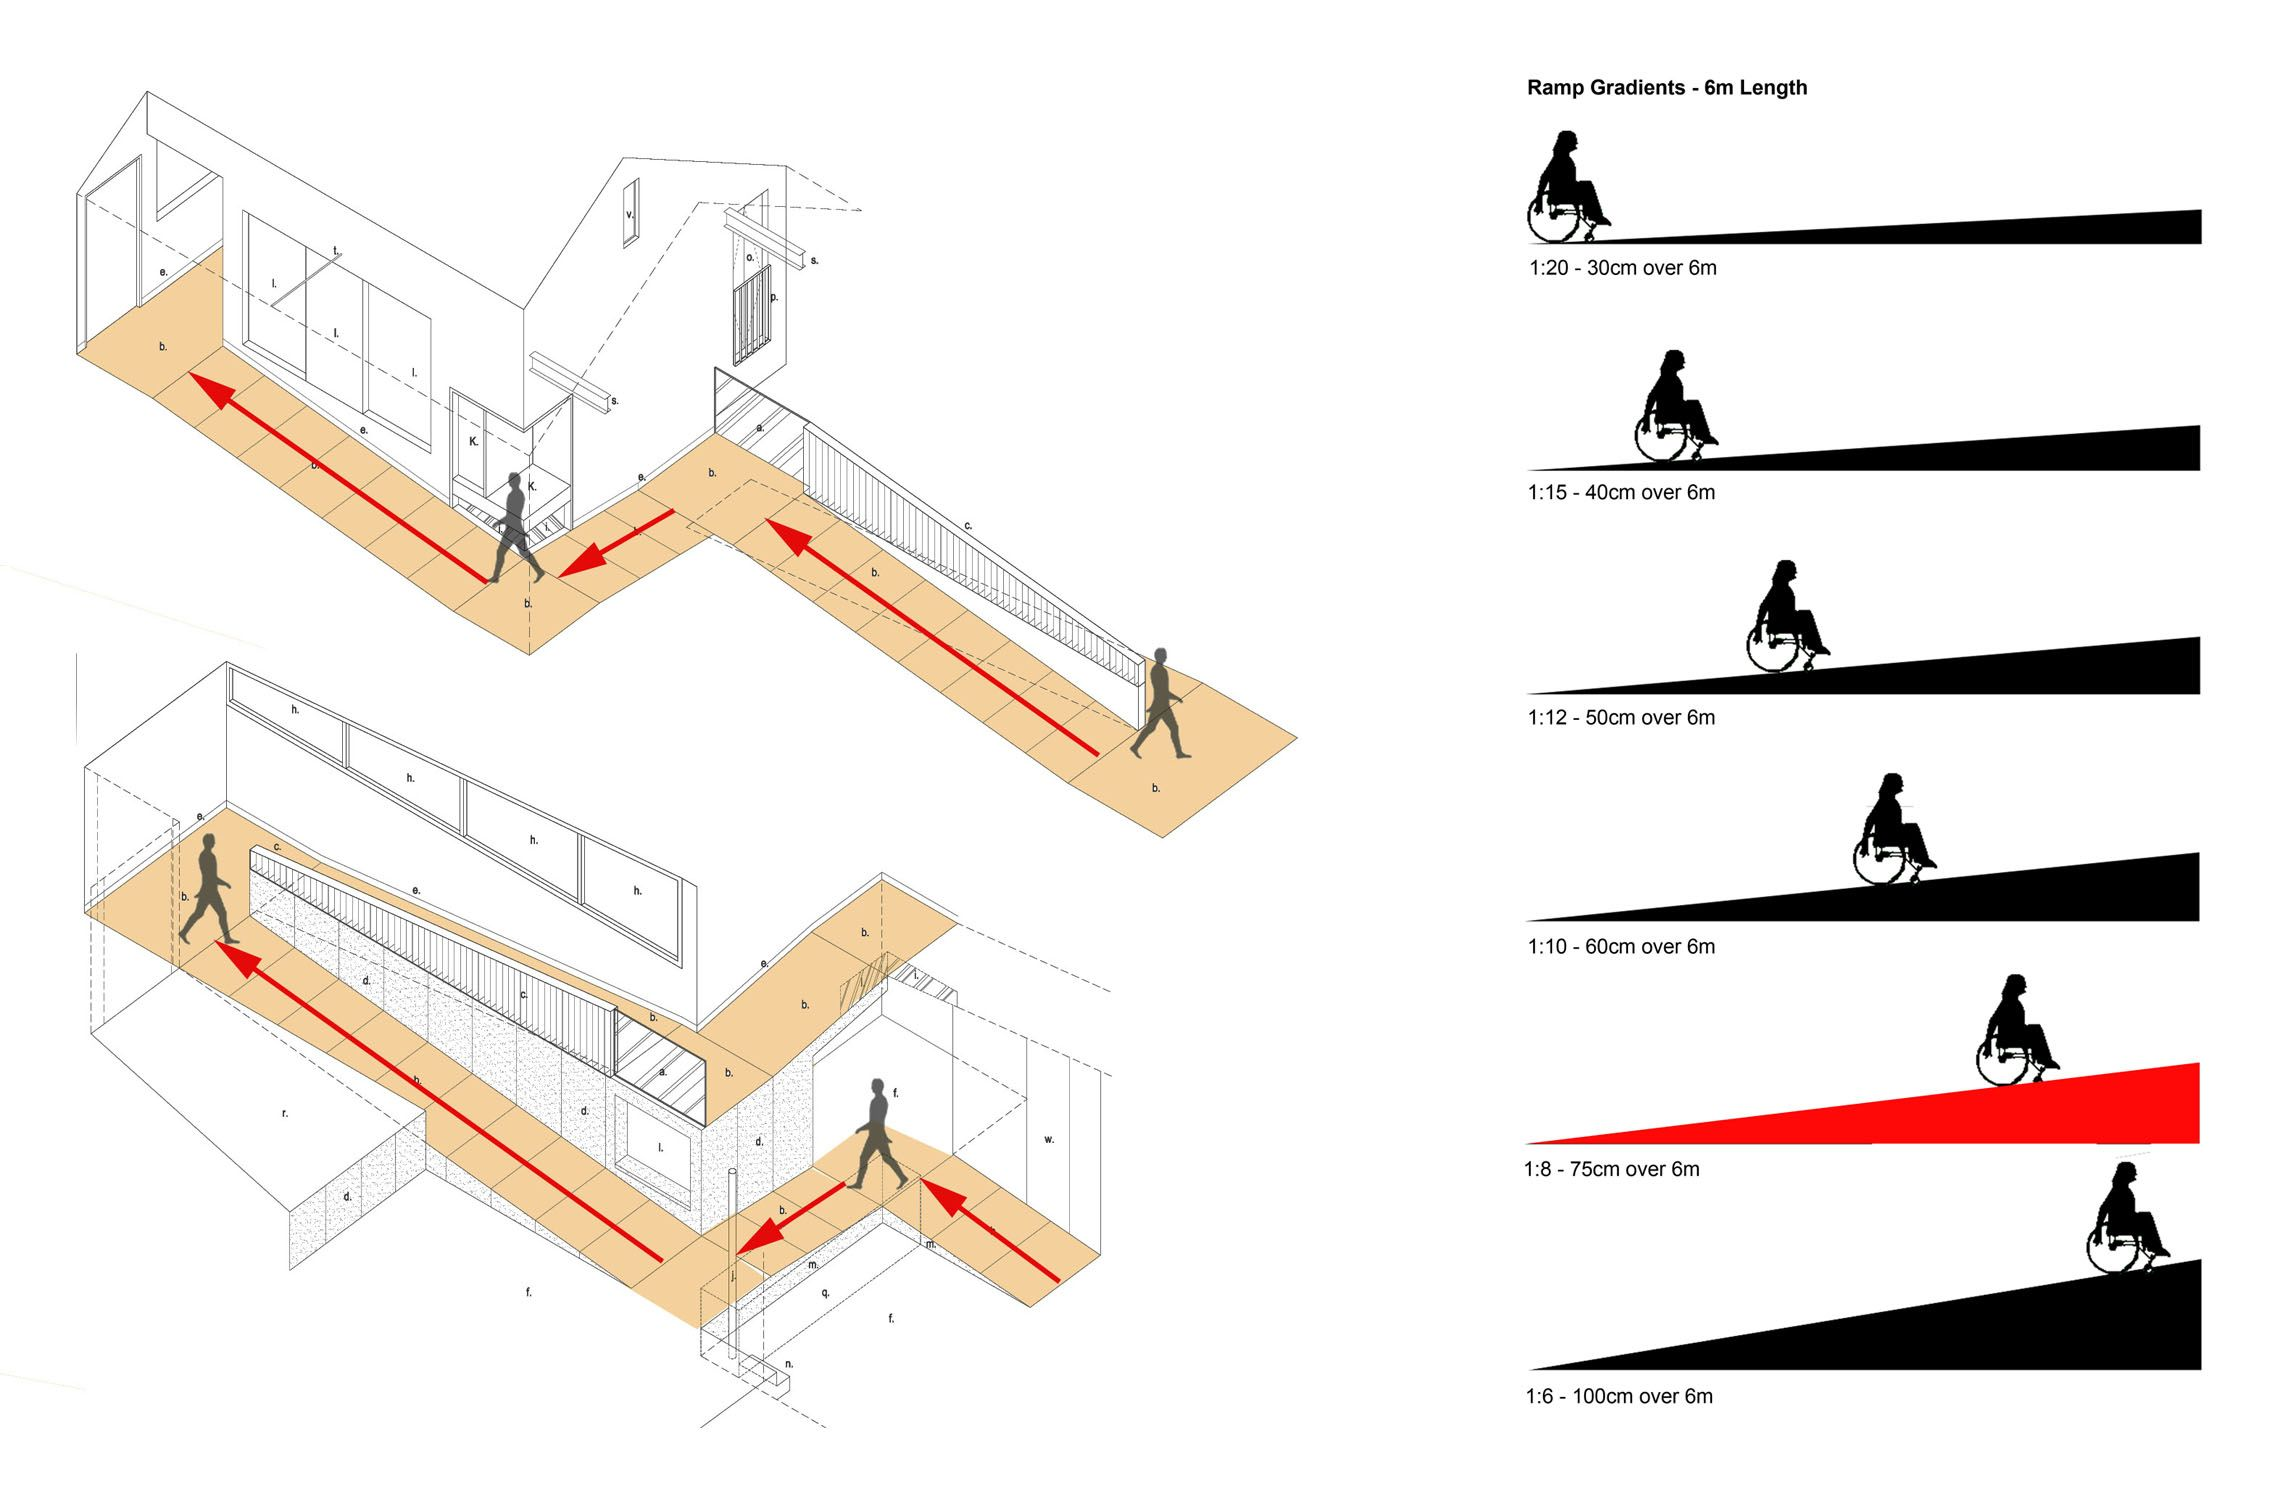 Ramps Slopes Gradients Inclines And Levels The Building Of Ramp Design Ramps Architecture Handicap Ramp Slope